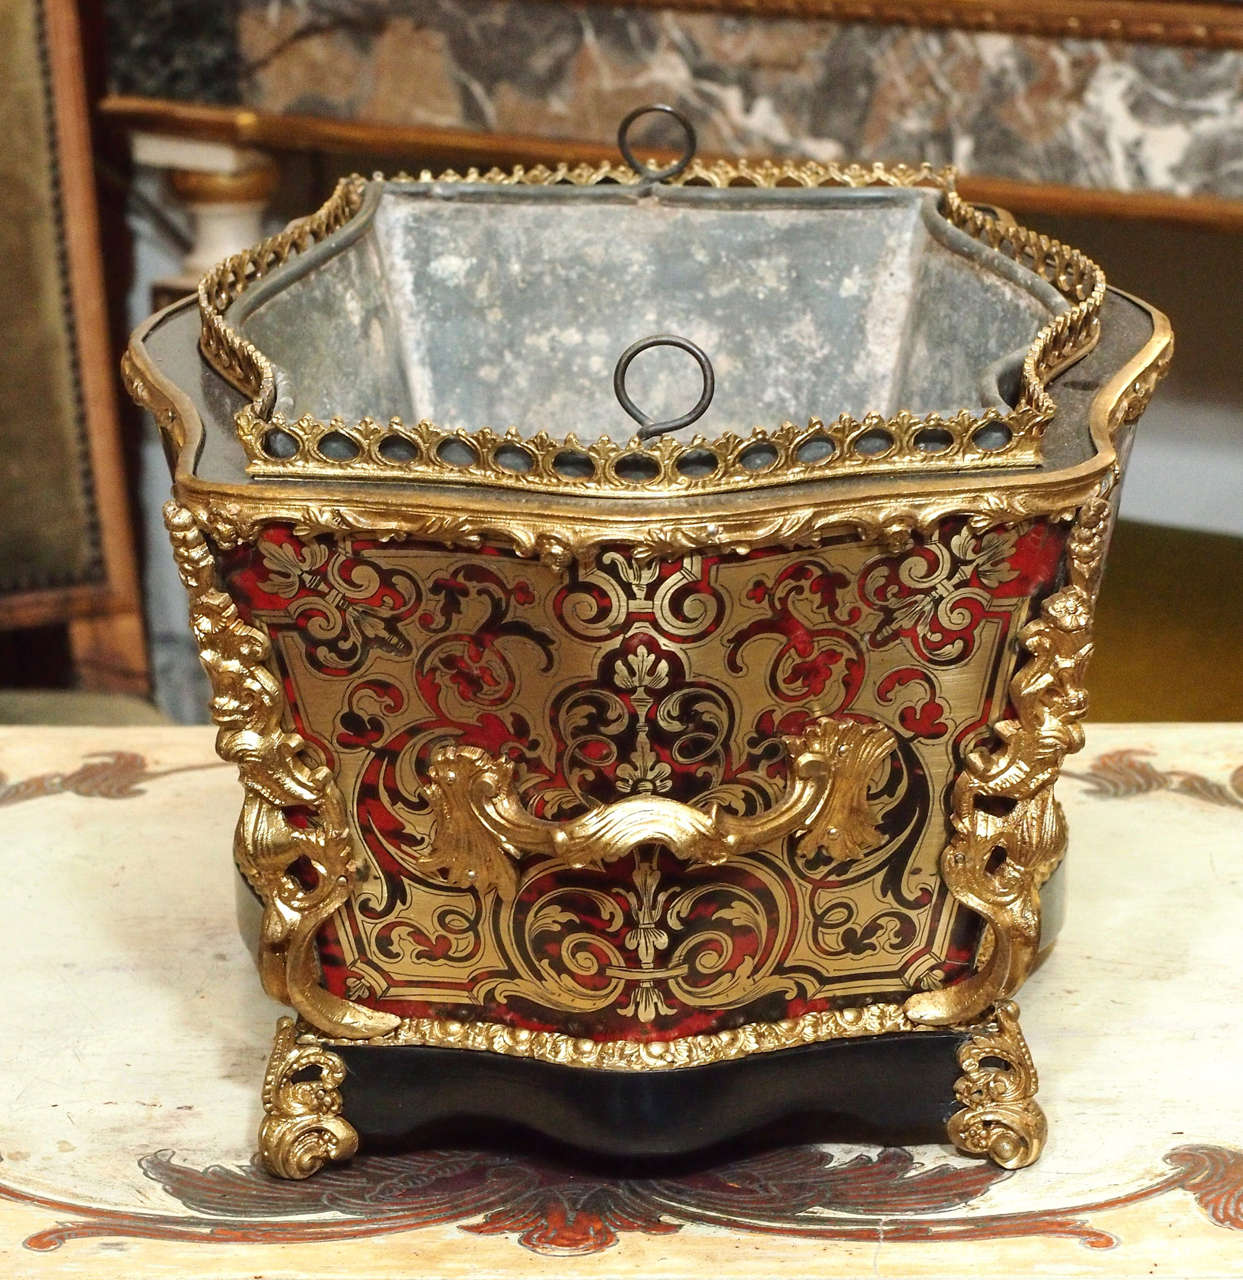 French napoleon iii boule jardiniere for sale at 1stdibs for Jardiniere napoleon 3